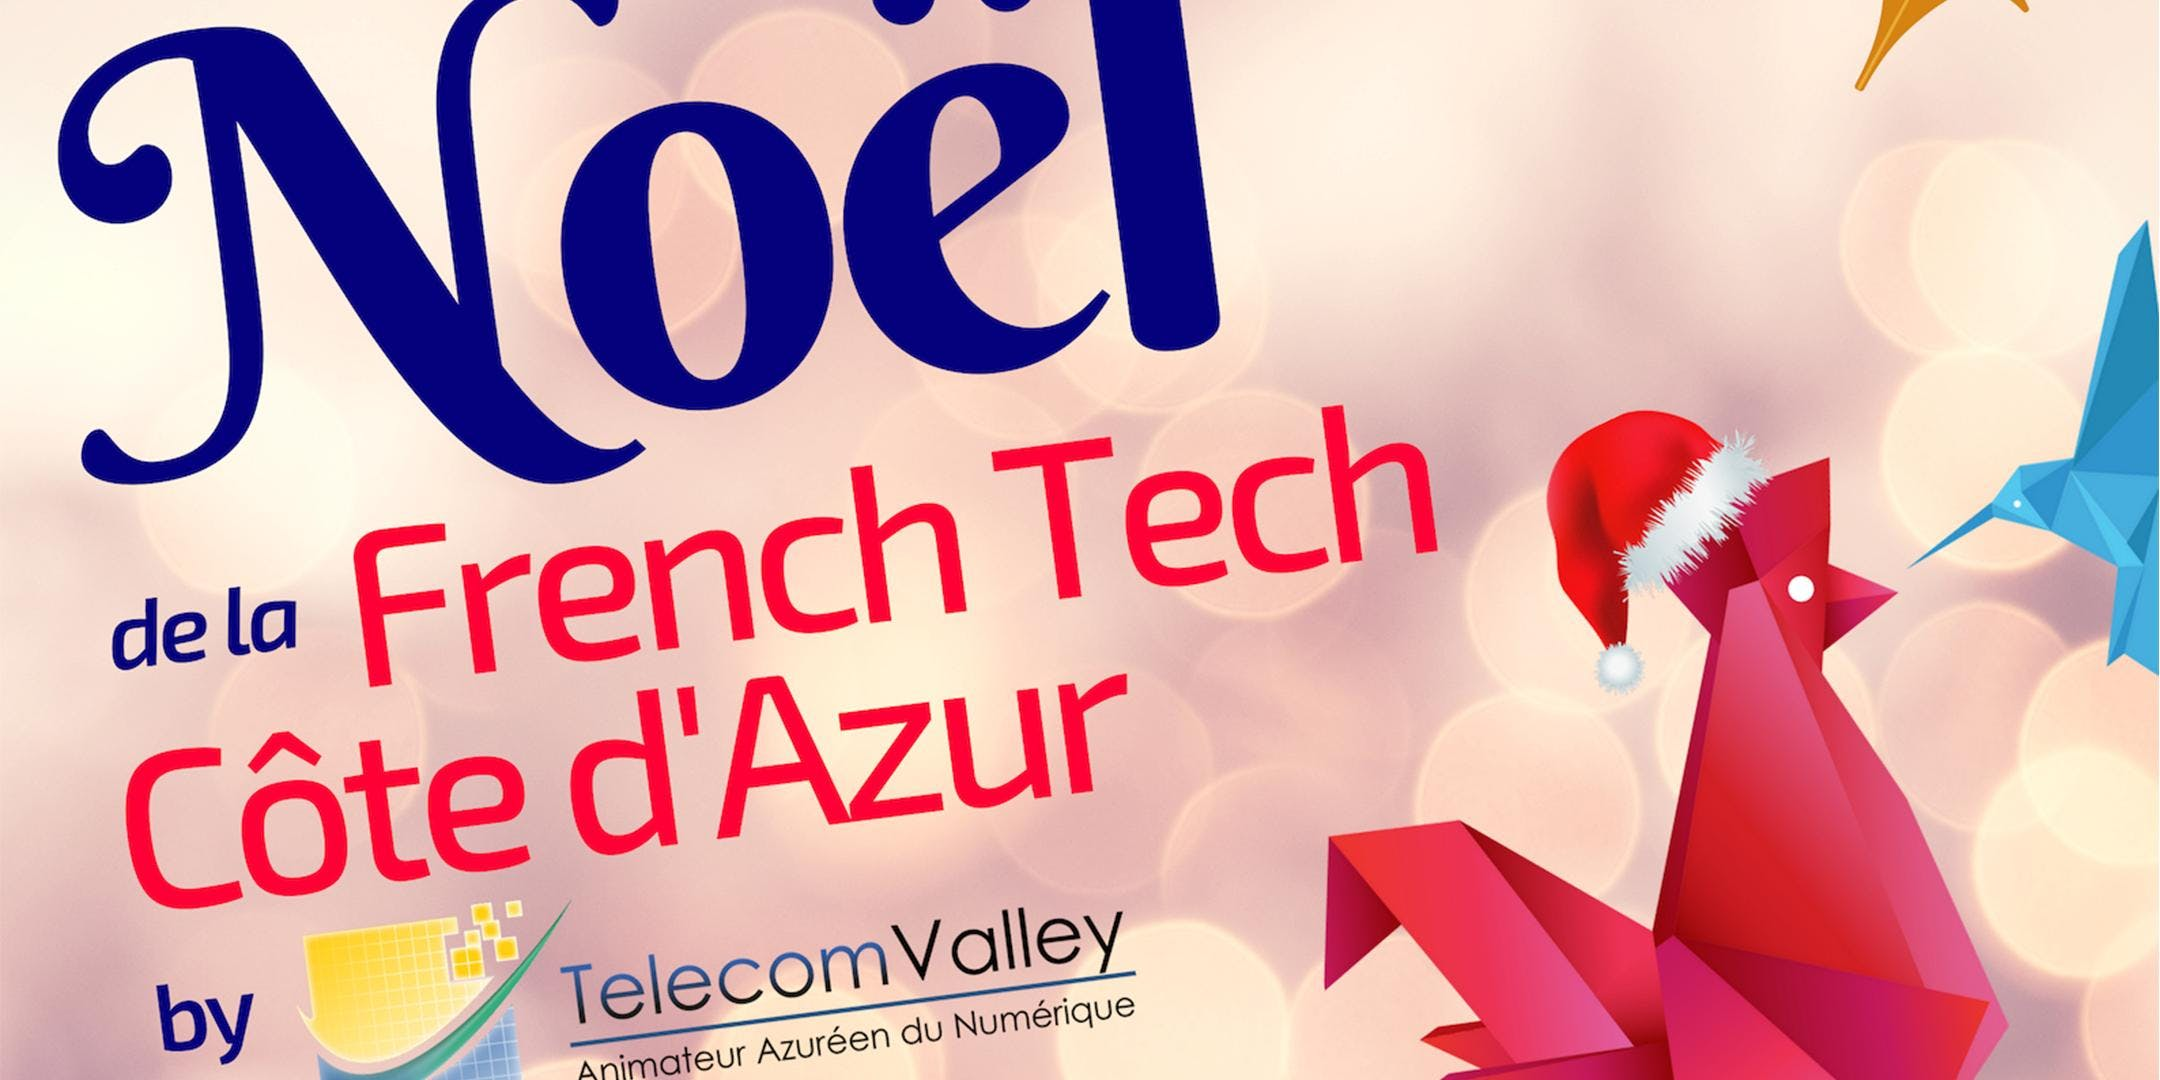 Noël de la French Tech Côte d'Azur by Telecom